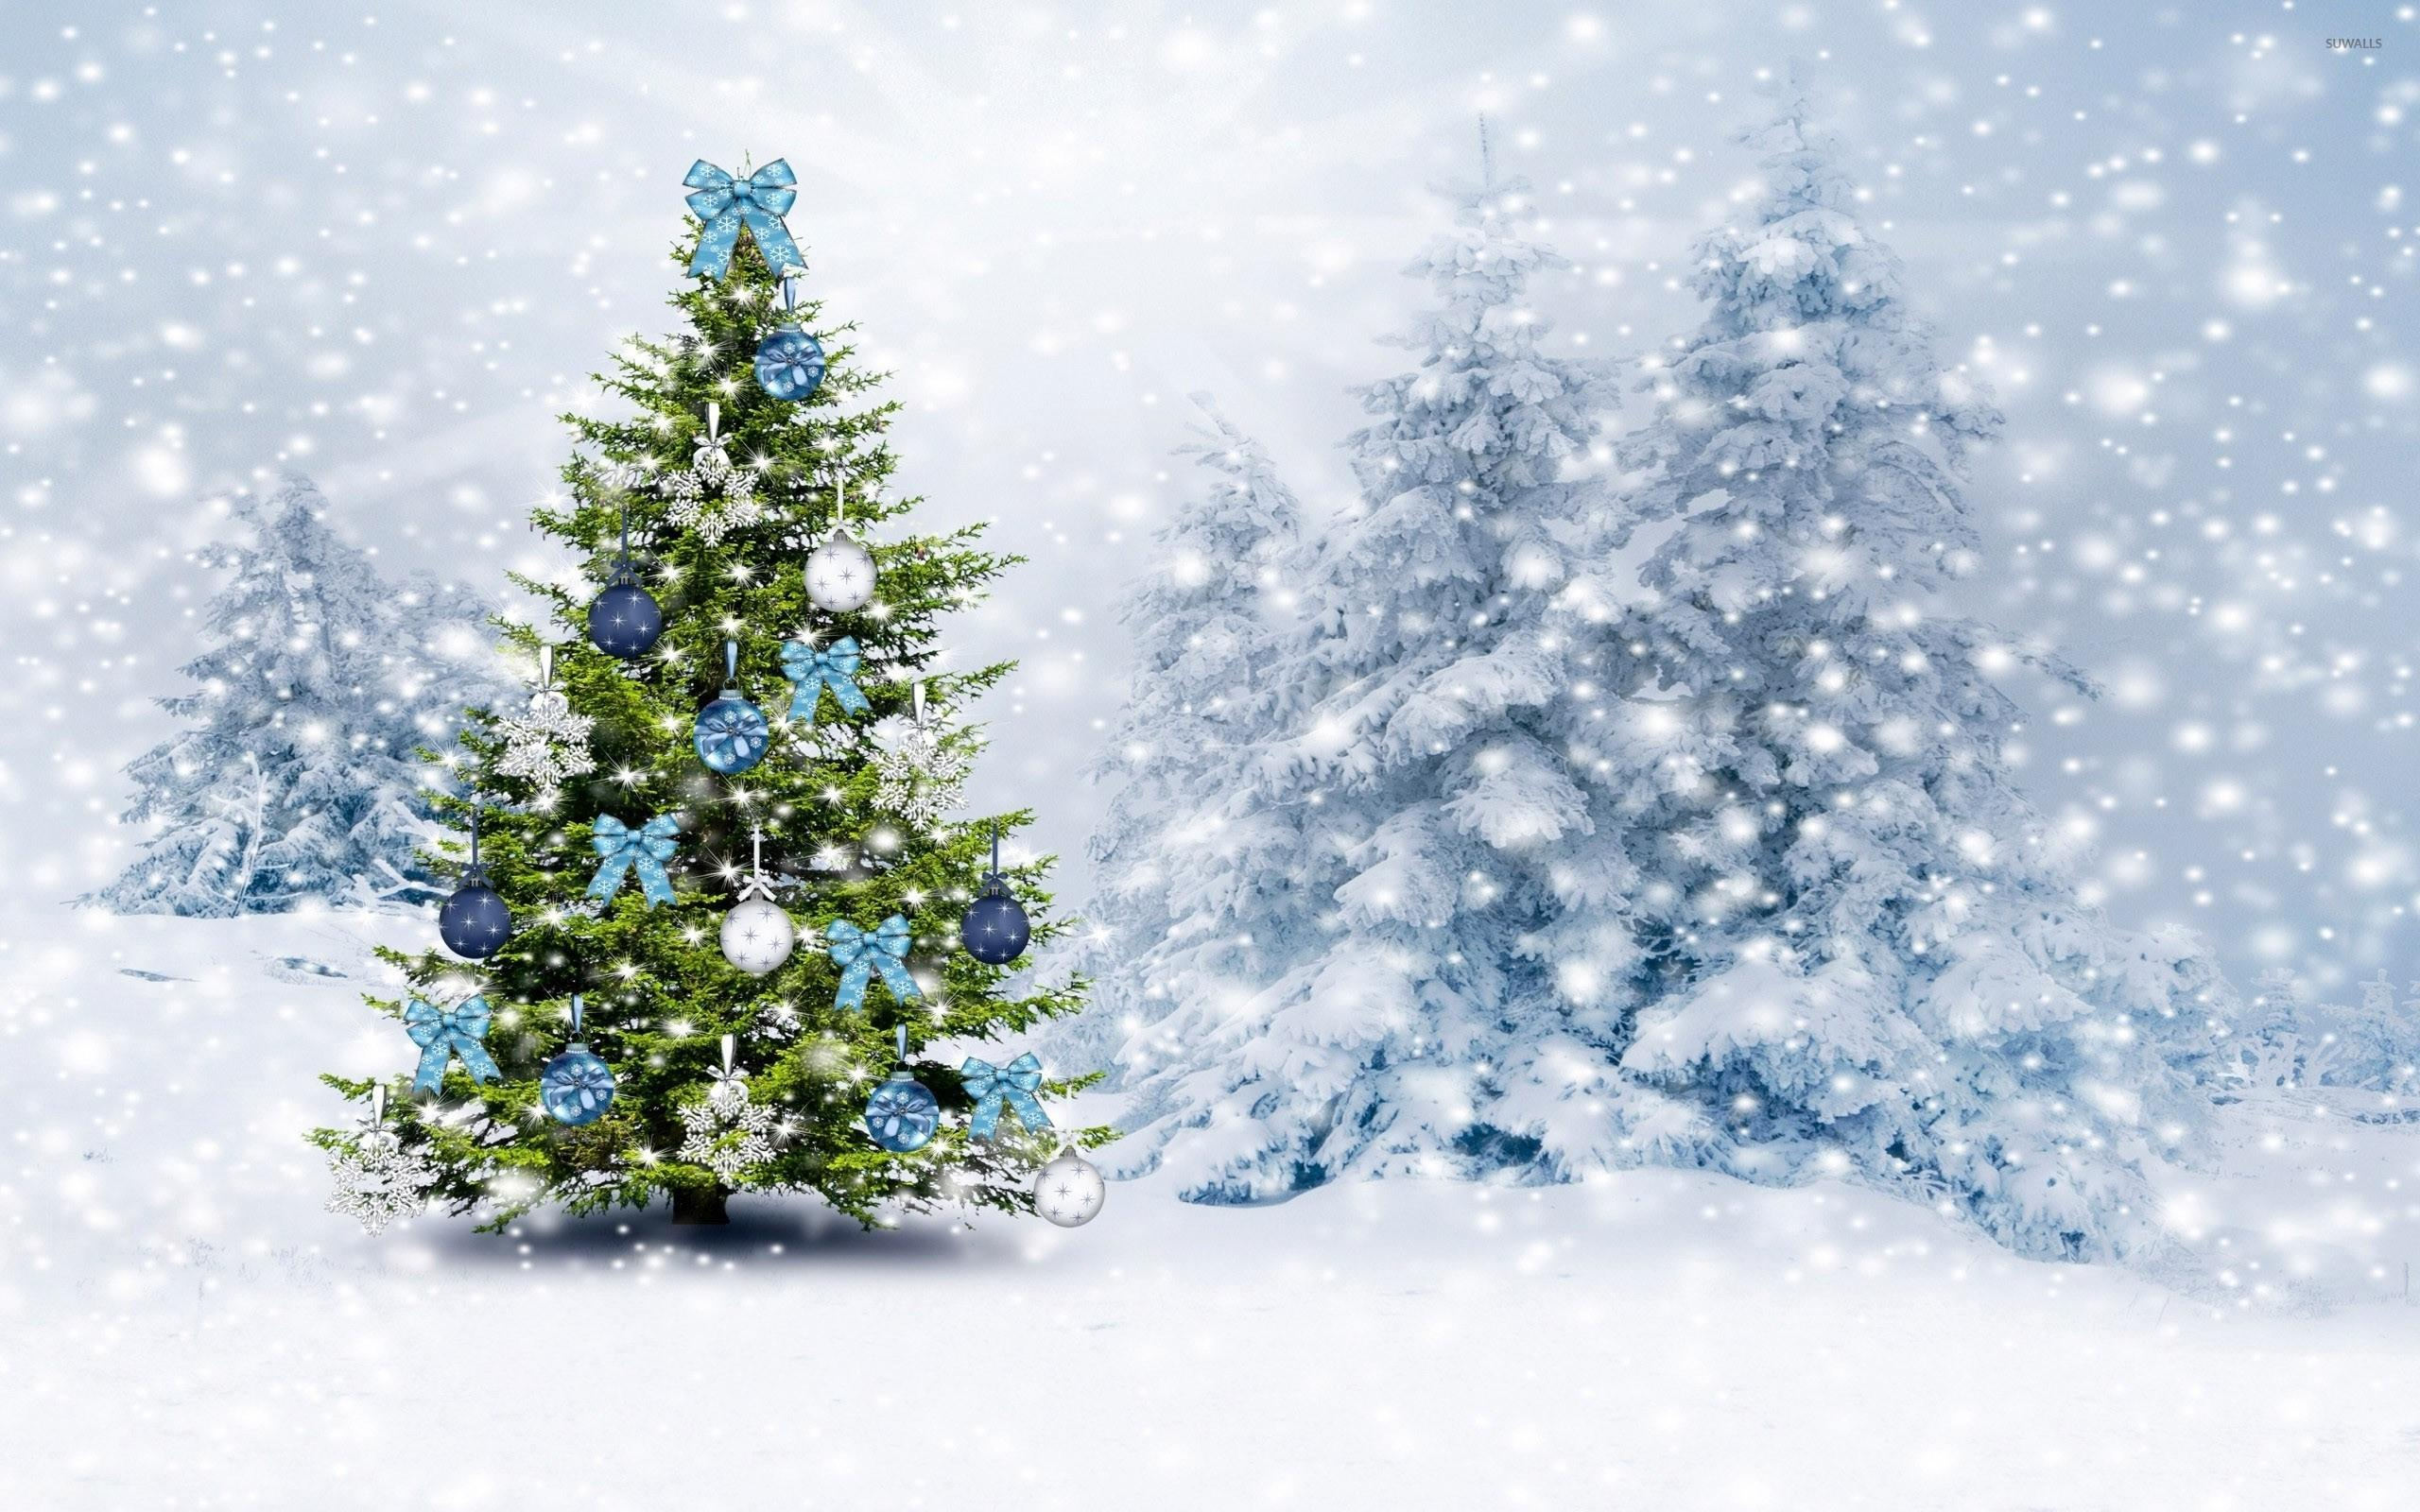 White Christmas Tree Wallpaper , Free Stock Wallpapers on